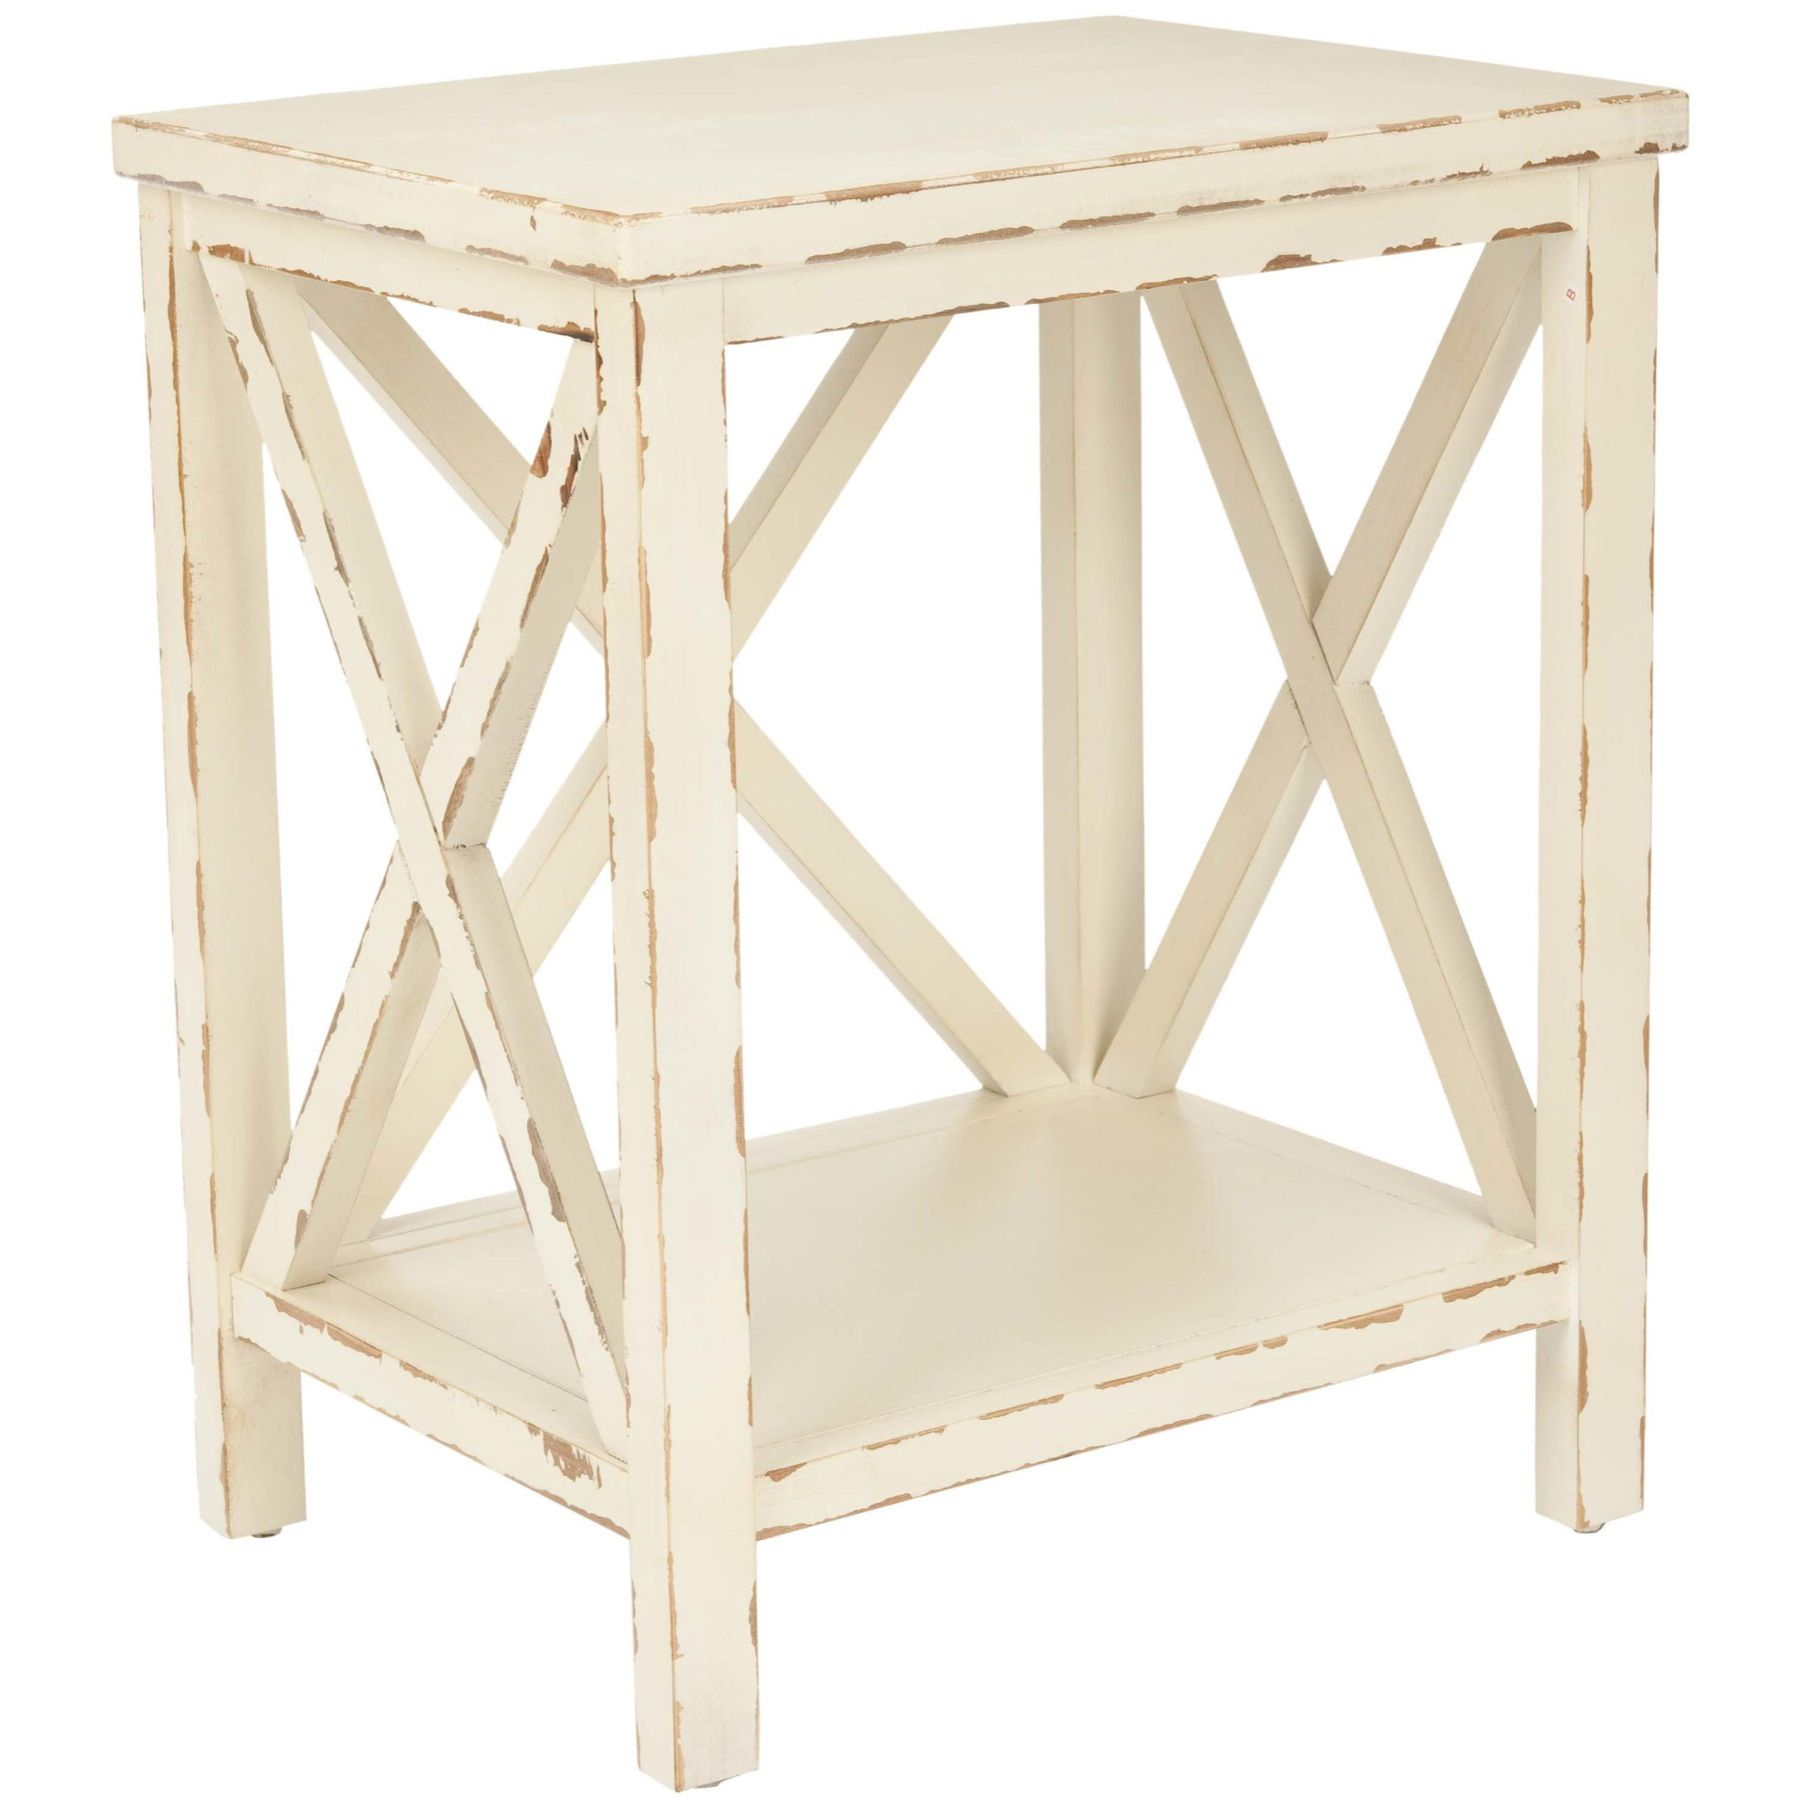 Safavieh American Home Mia End Table, Beige